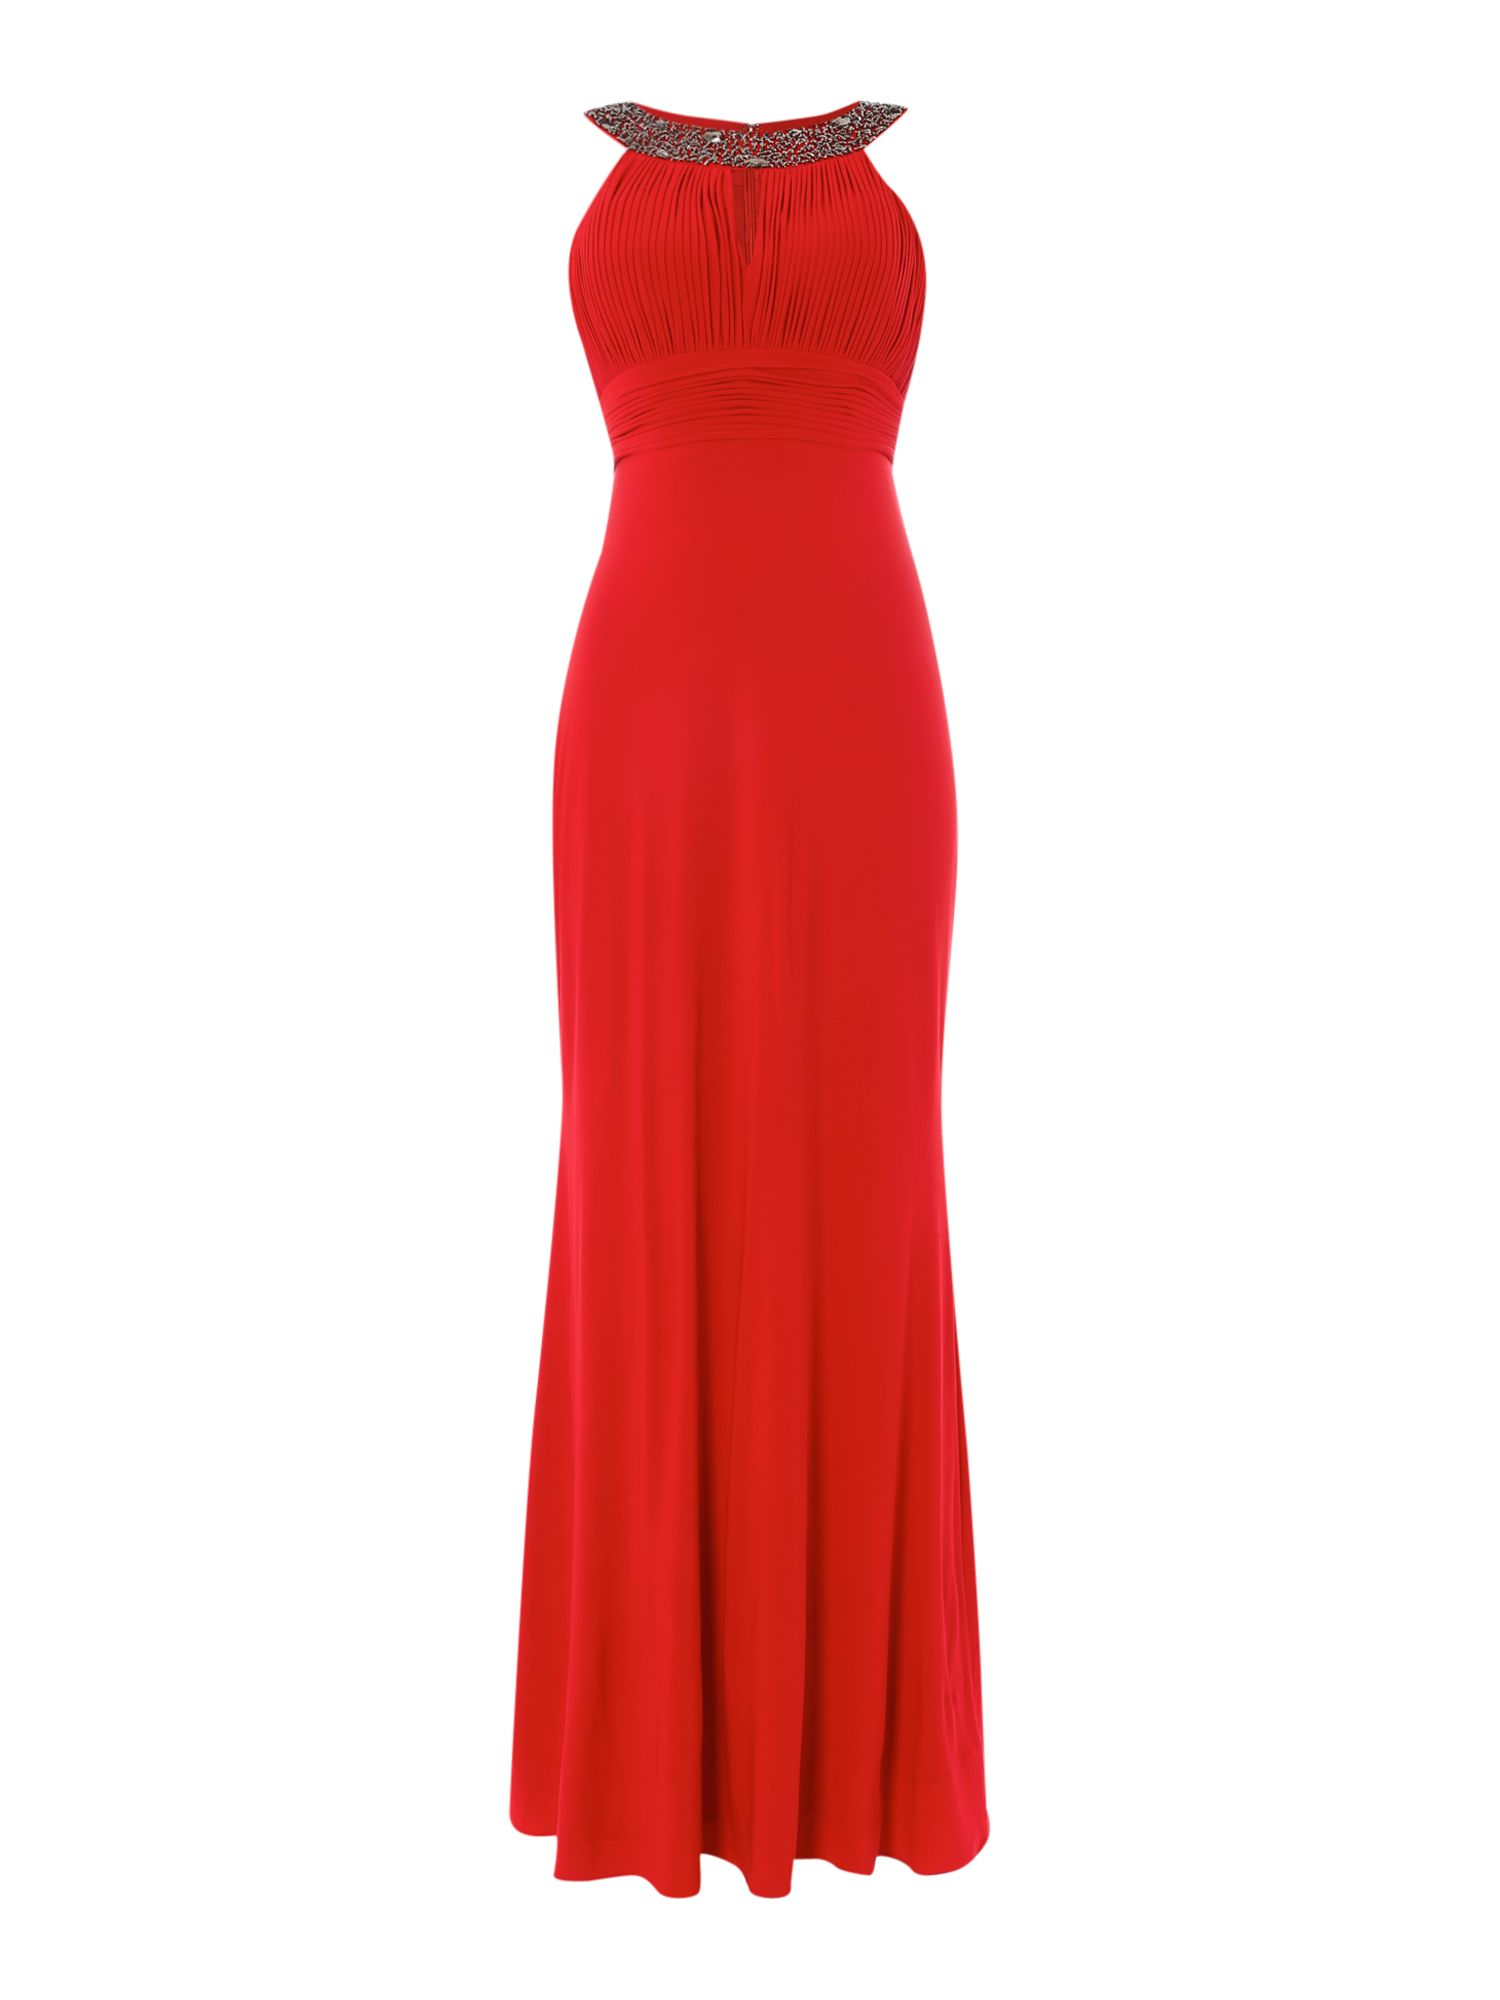 JS Collections Crystal Neck Halter Dress, Red